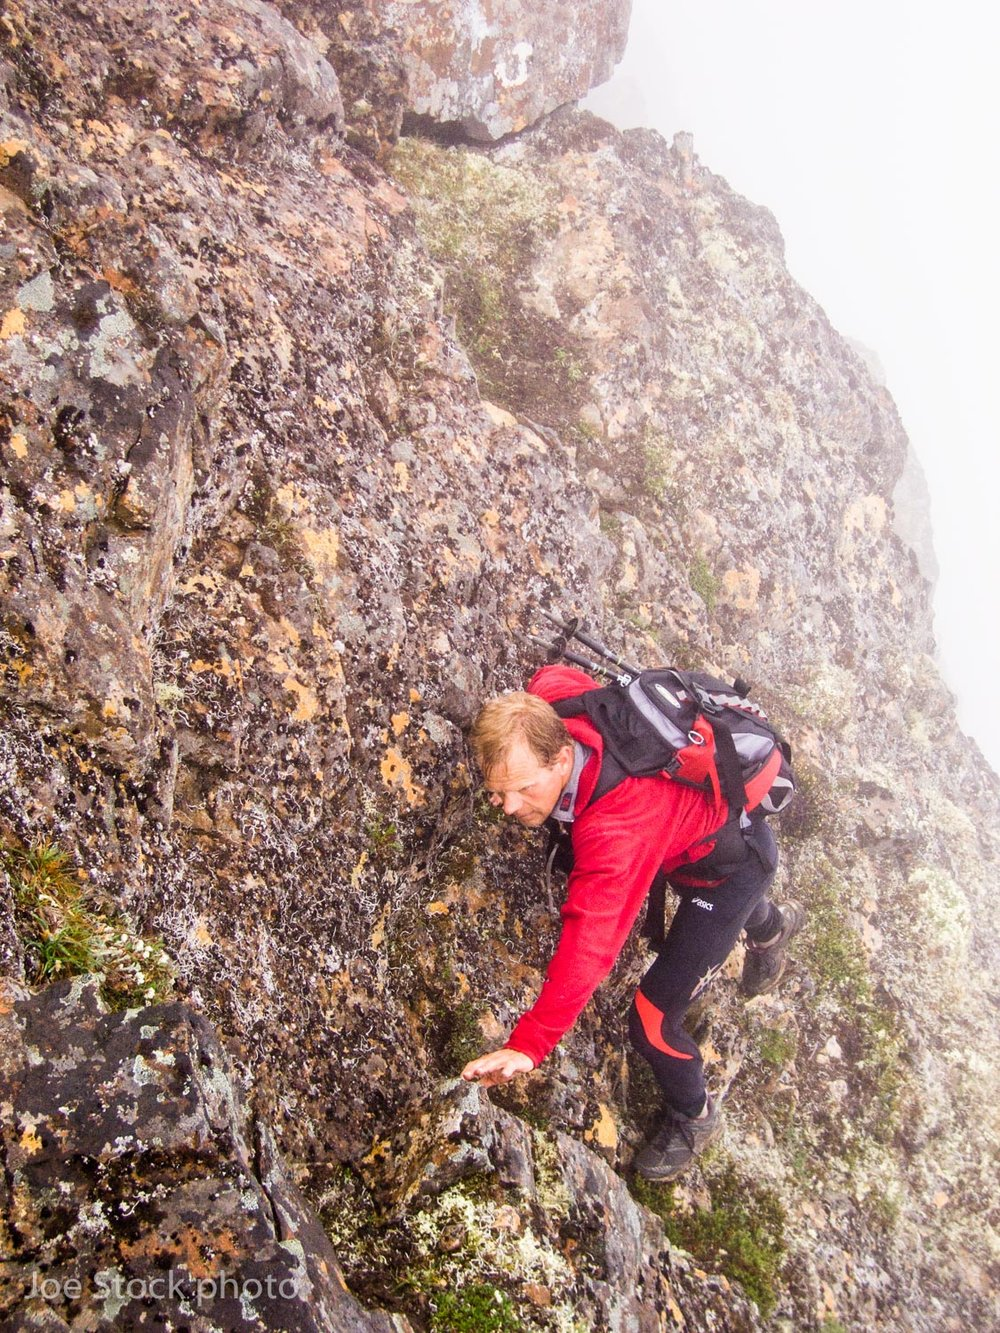 Other portions of the ridge have exposed scrambling. A difficulty of the linkup is learning if each section of the ridge is better traversed or avoided. Fog can help, making exposed portions less fearsome by hiding the abyss.